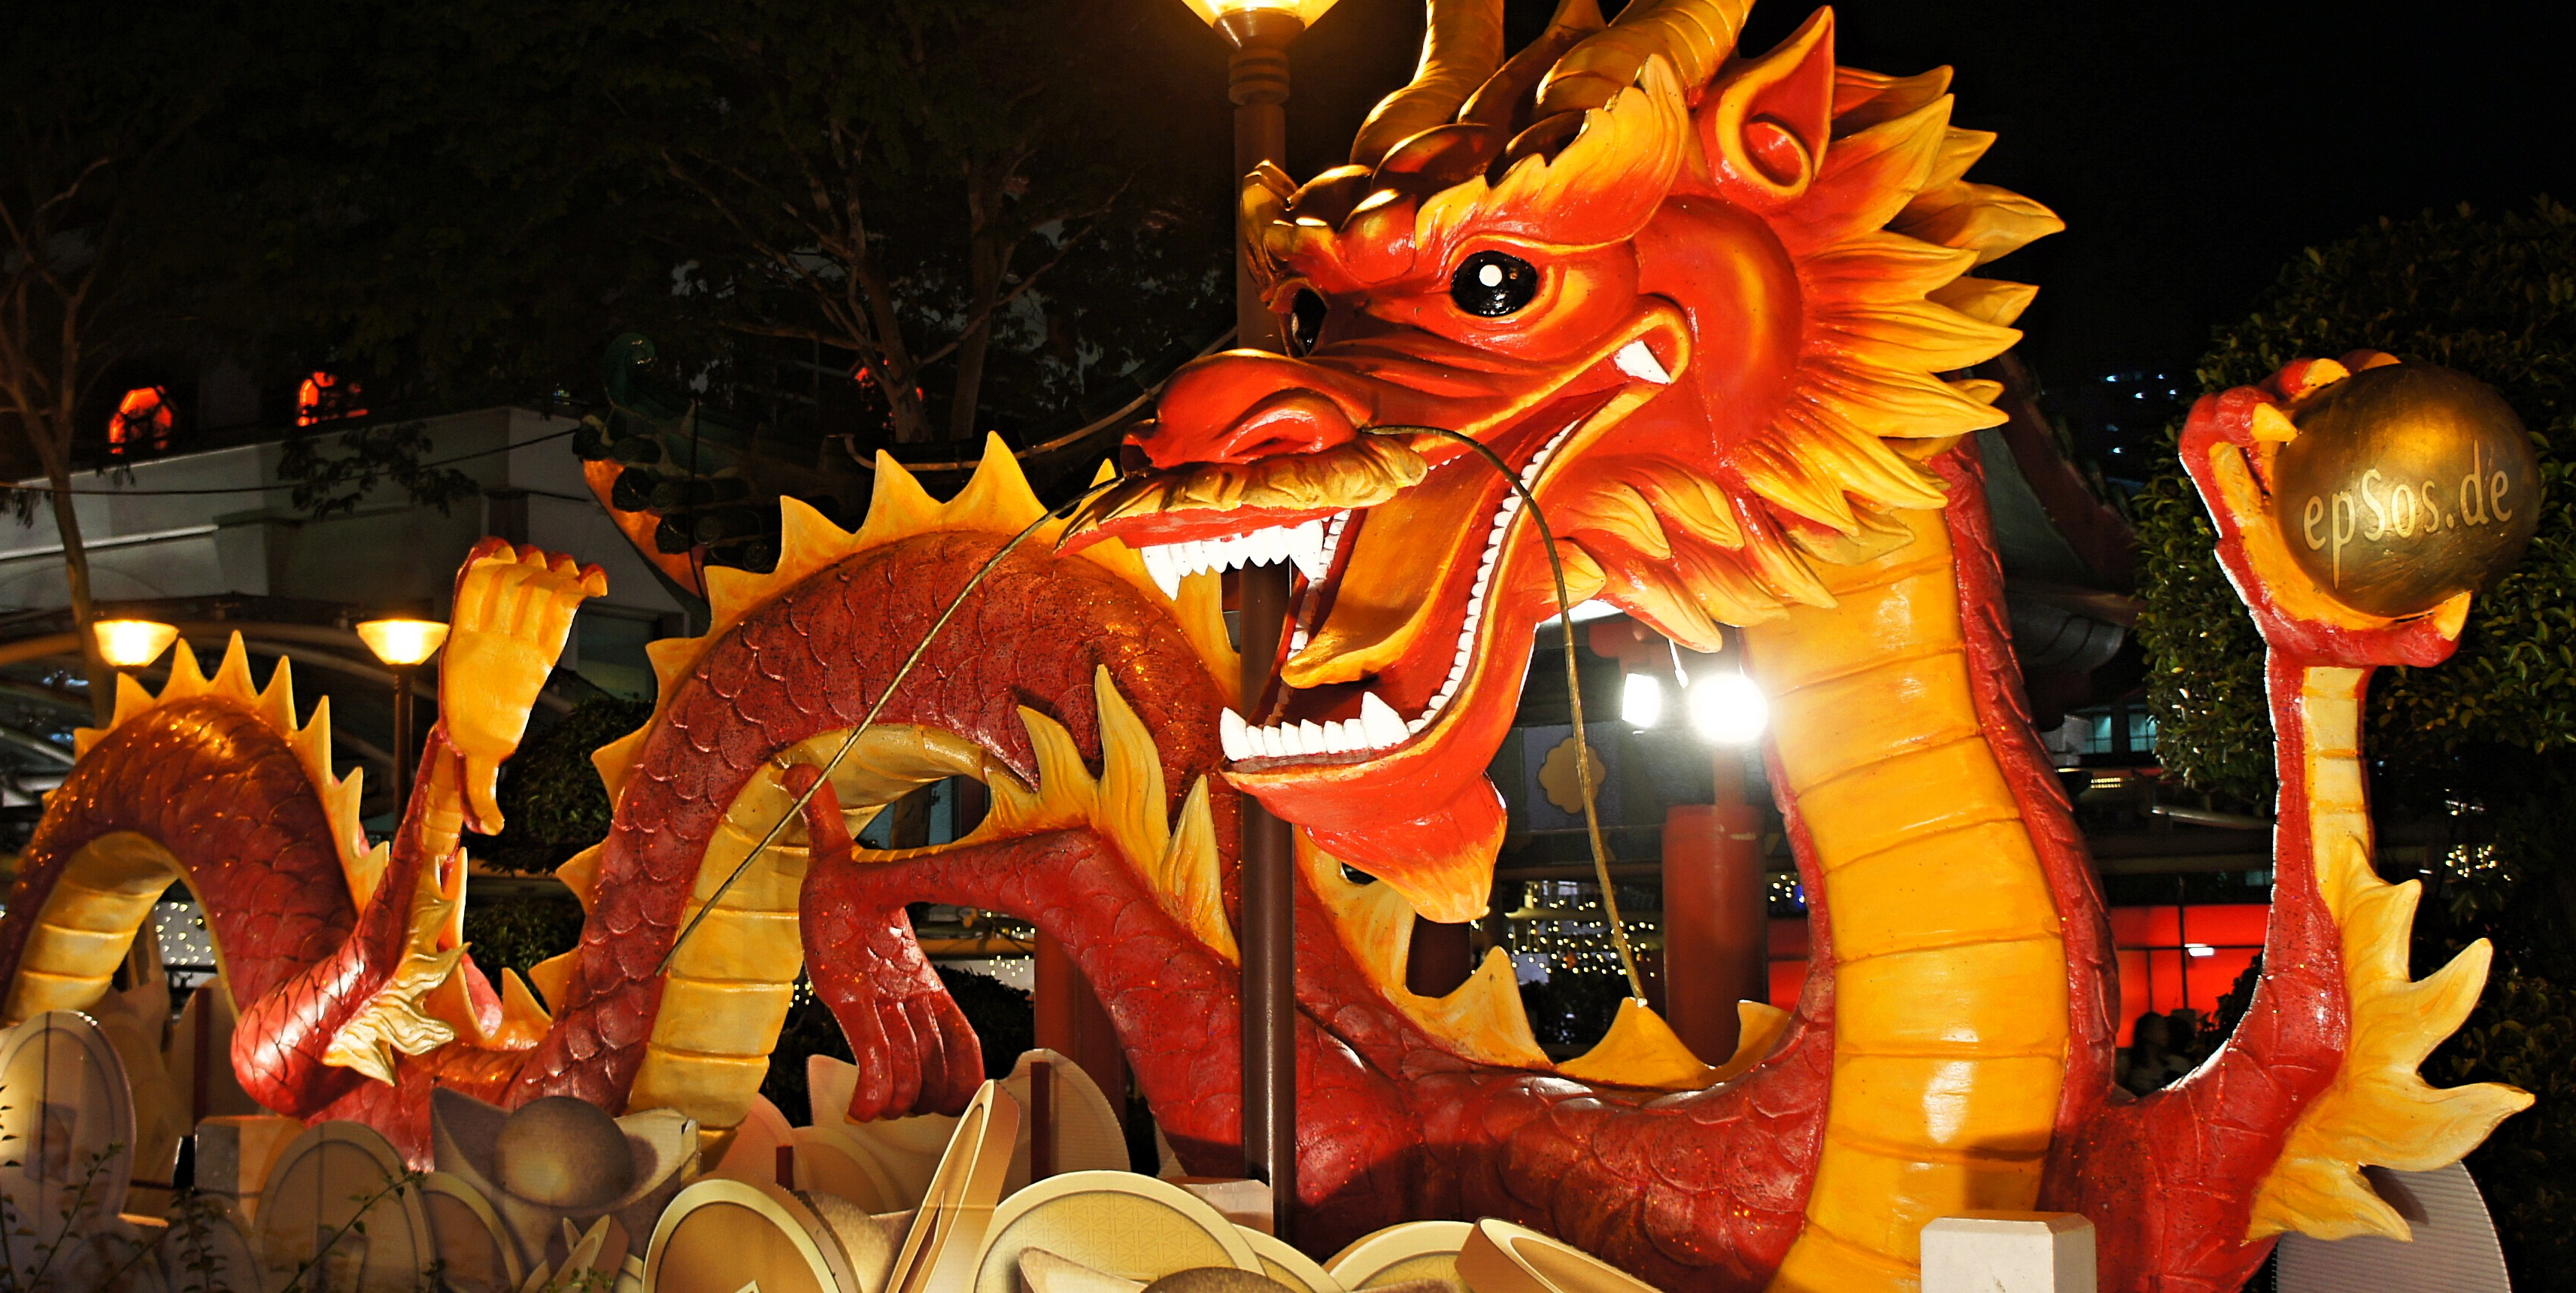 25 best chinese new year pictures and images chinese new year dragon picture kristyandbryce Choice Image